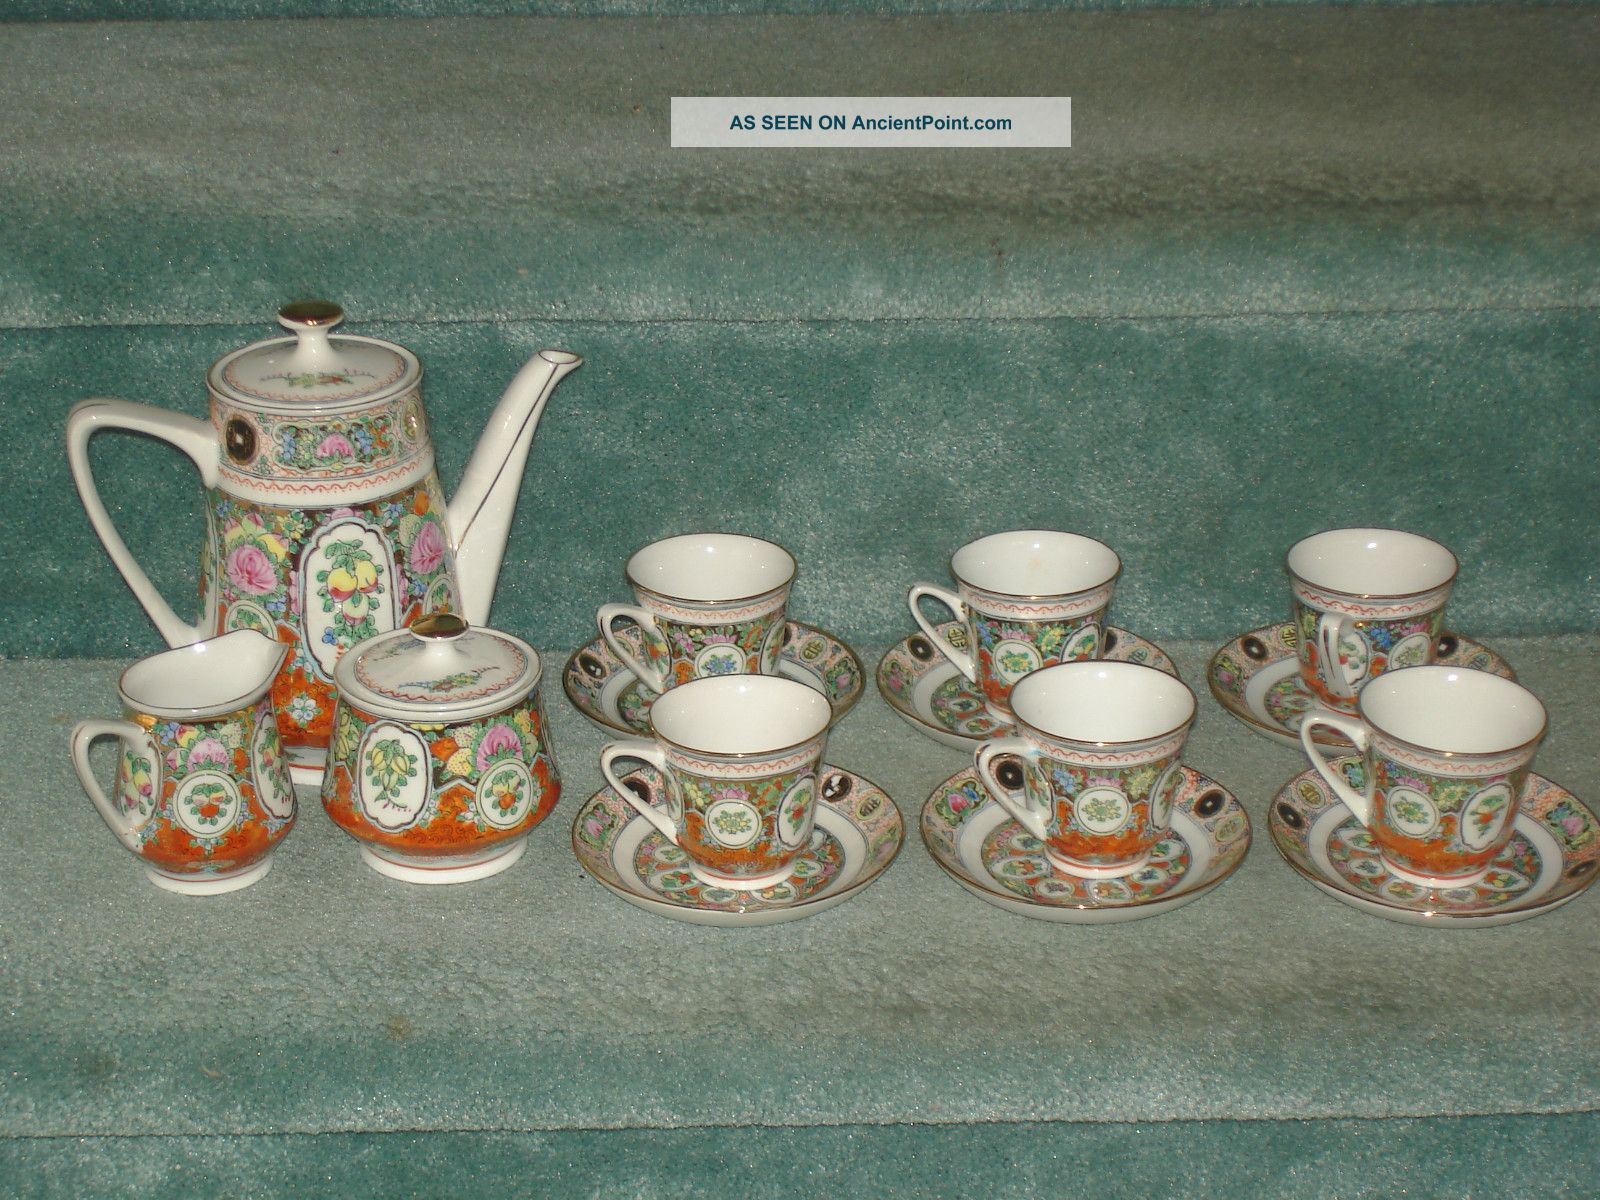 Vintage Chinese Fine China Teapot,  Sugar Bowl,  Creamer,  6 Cups With Saucers Teapots photo